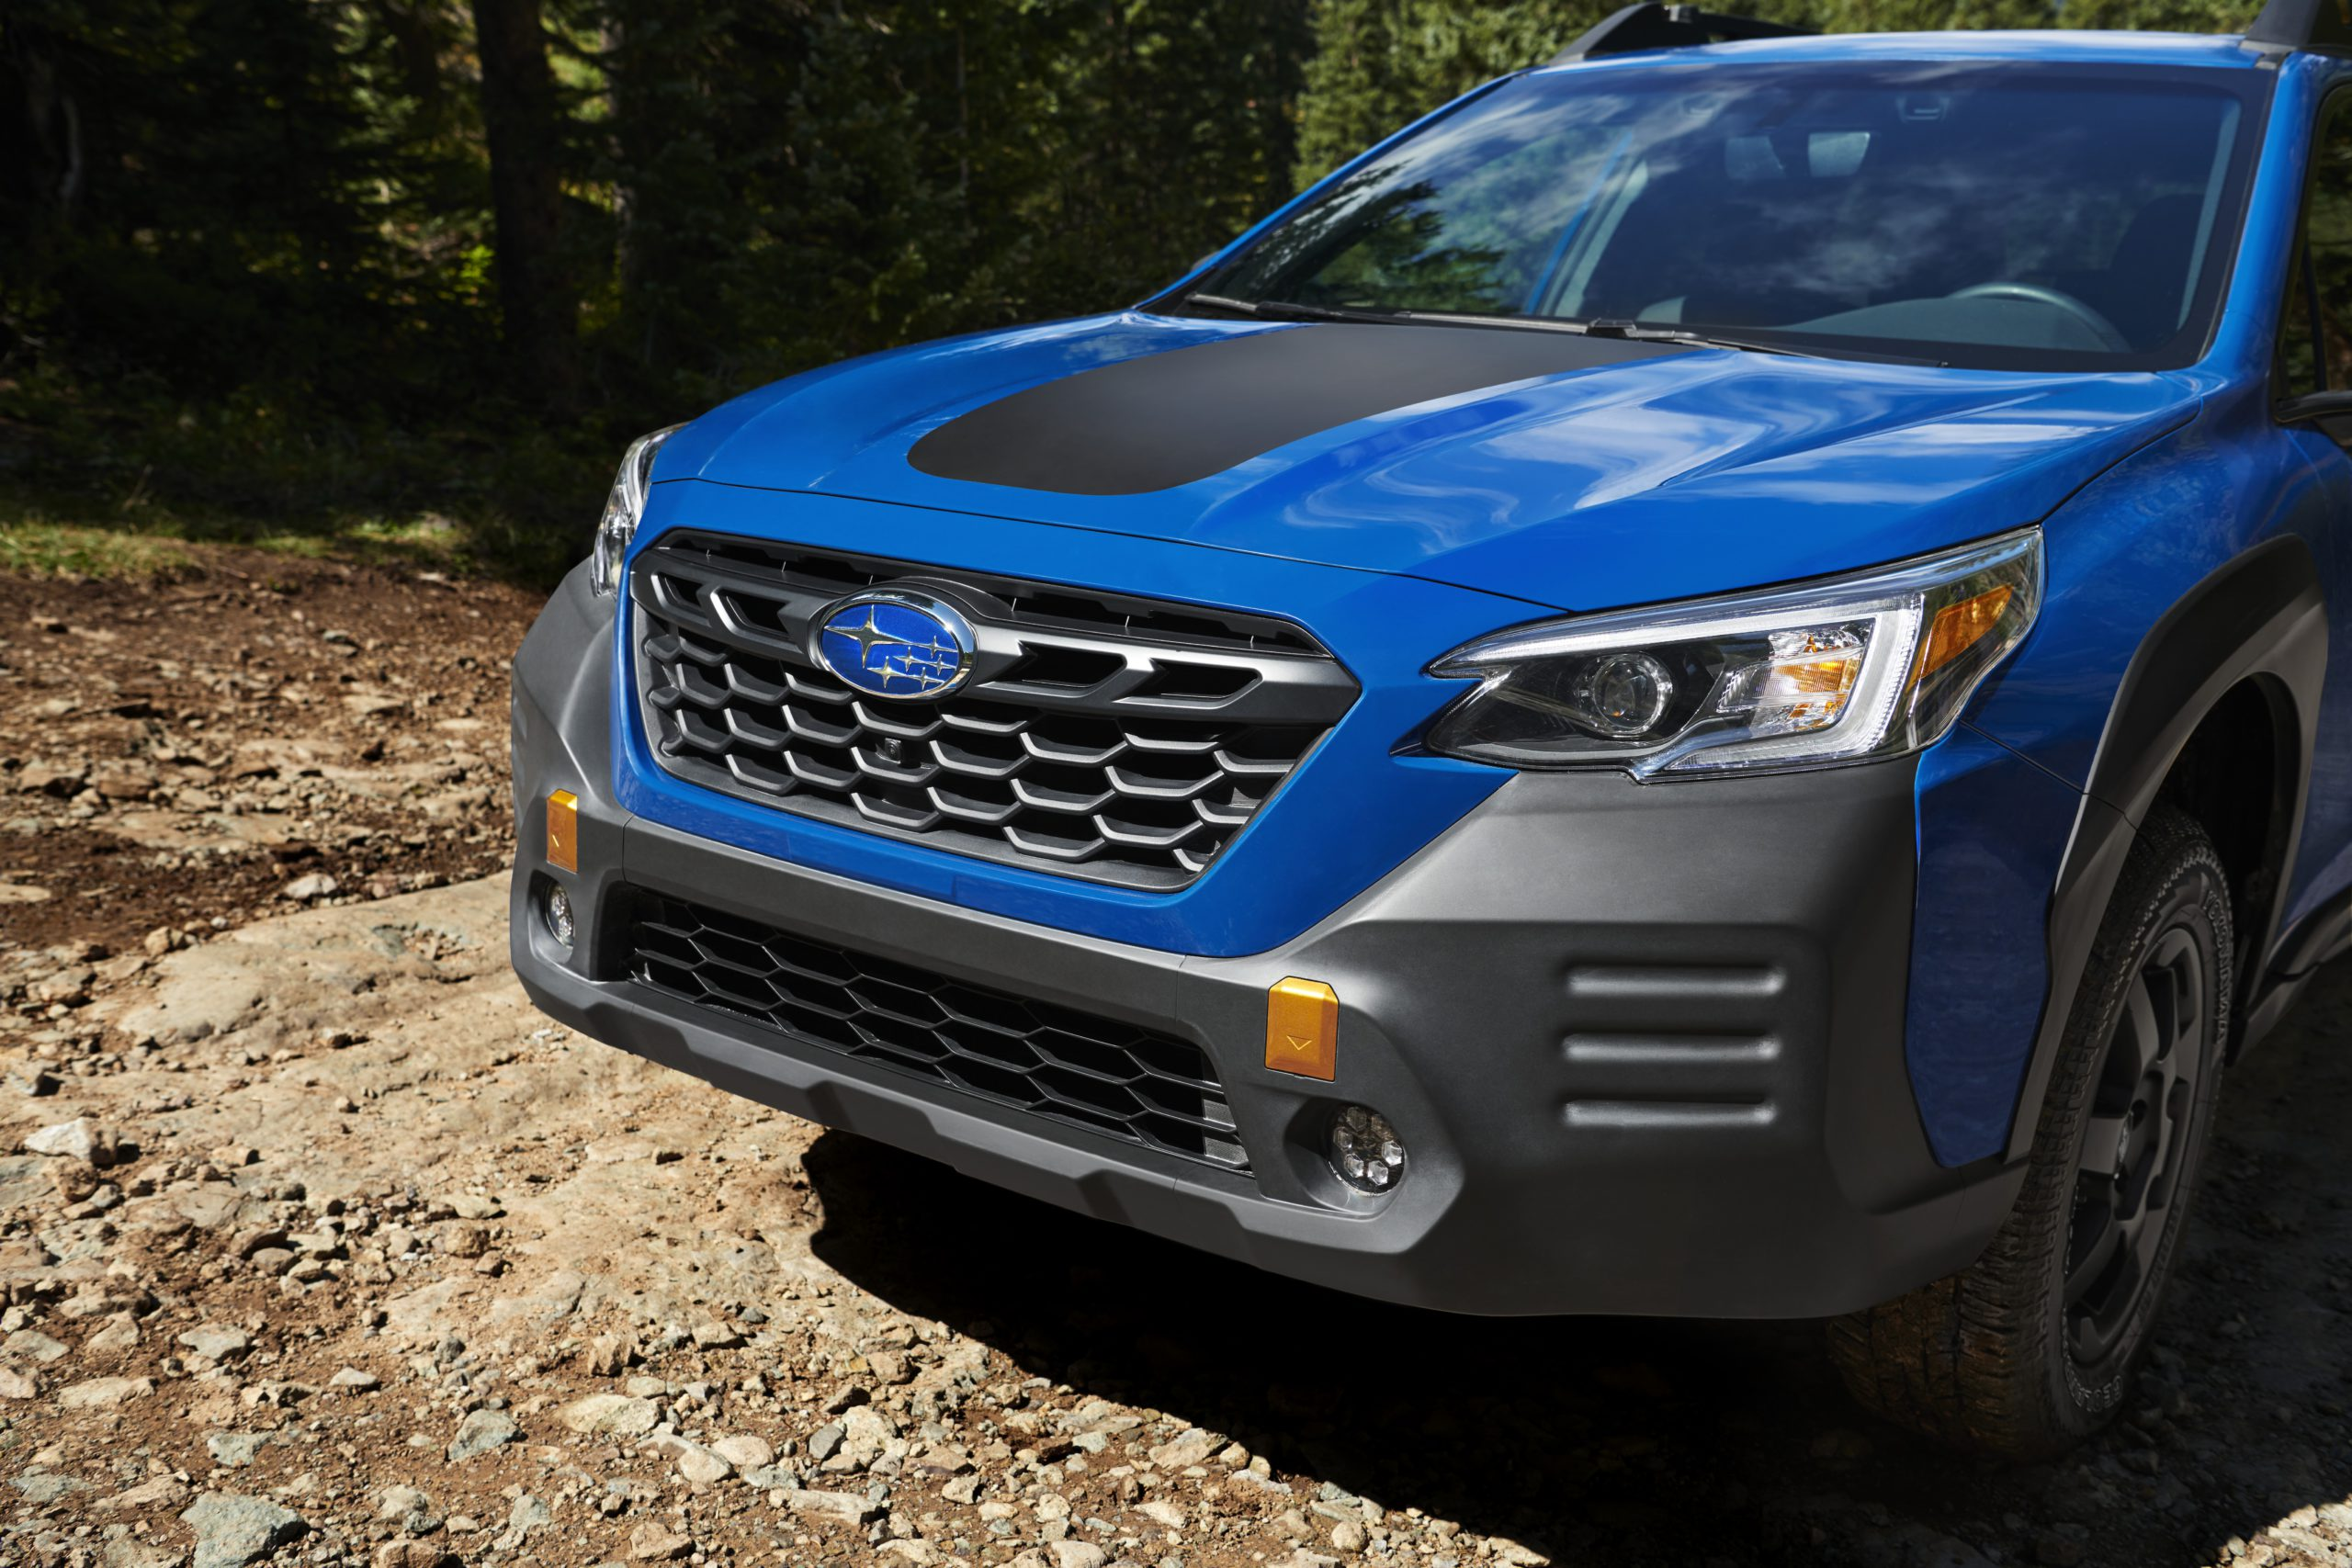 2022 Subaru Outback Wilderness front end